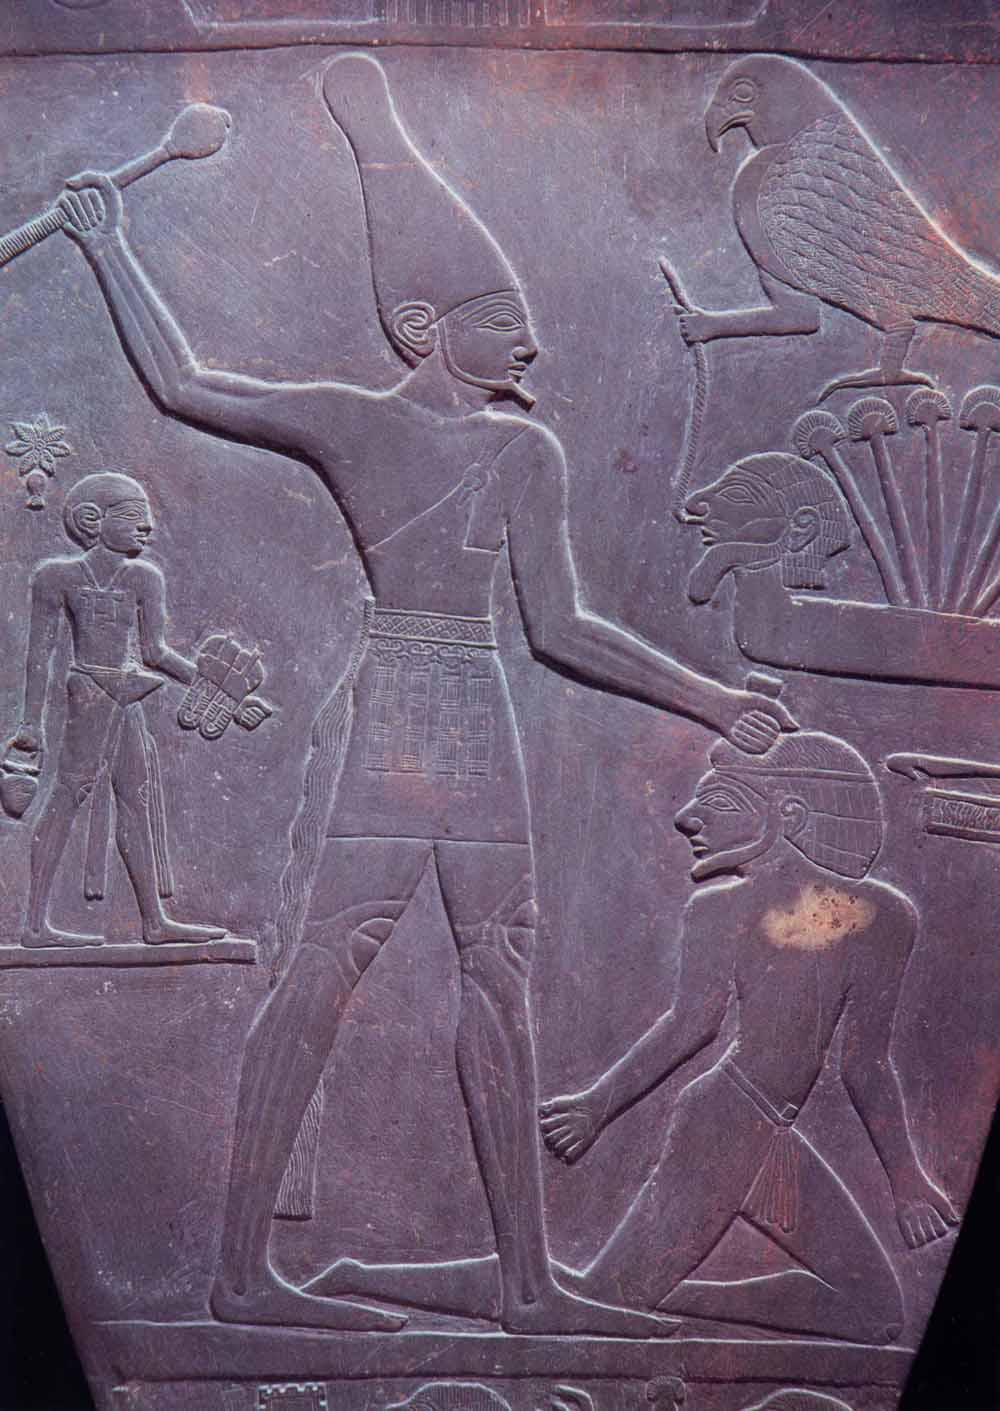 narmer palette Ancient egypt: early dynastic period - narmer narmer (mernar) was a ruler of ancient egypt at the end of the predynastic period and the.